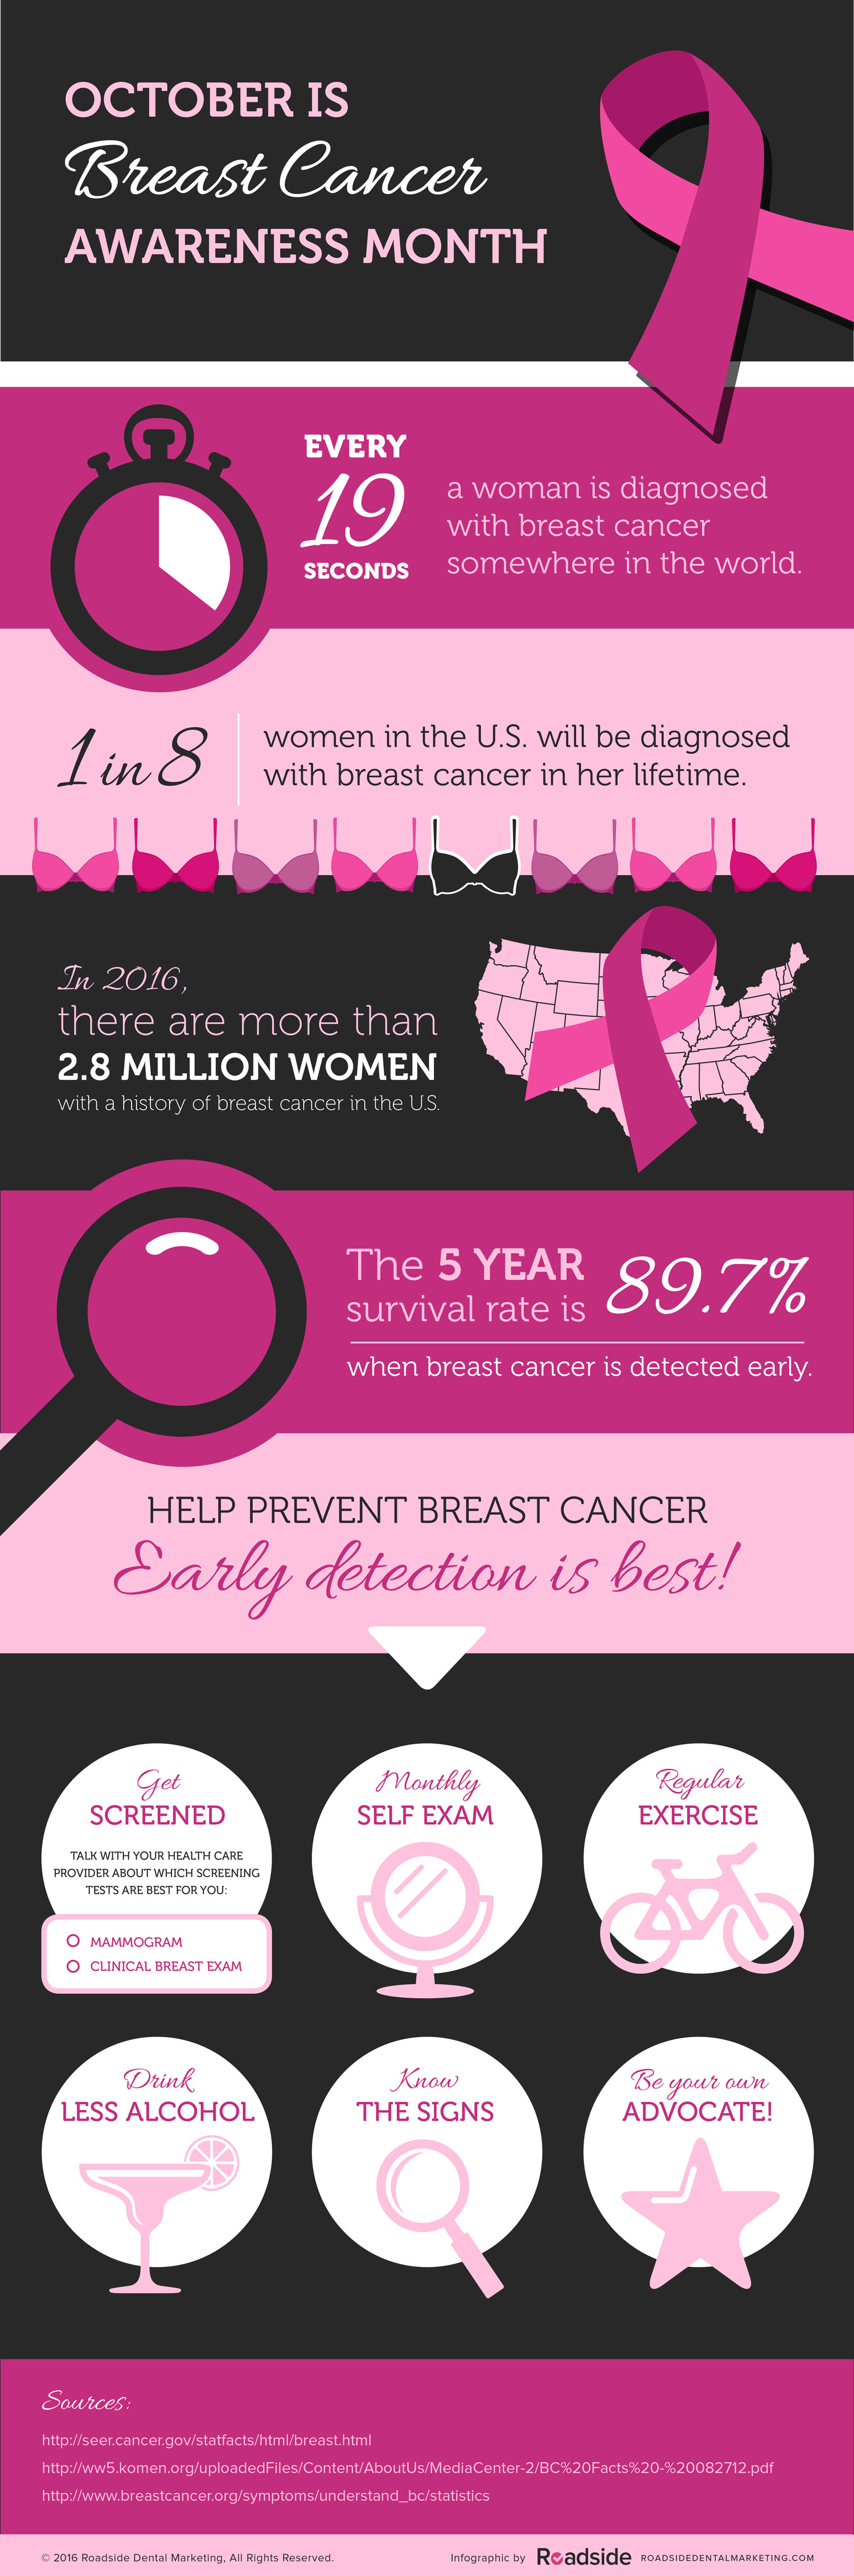 October is Breast Cancer Awareness Month - learn the facts in this infographic.